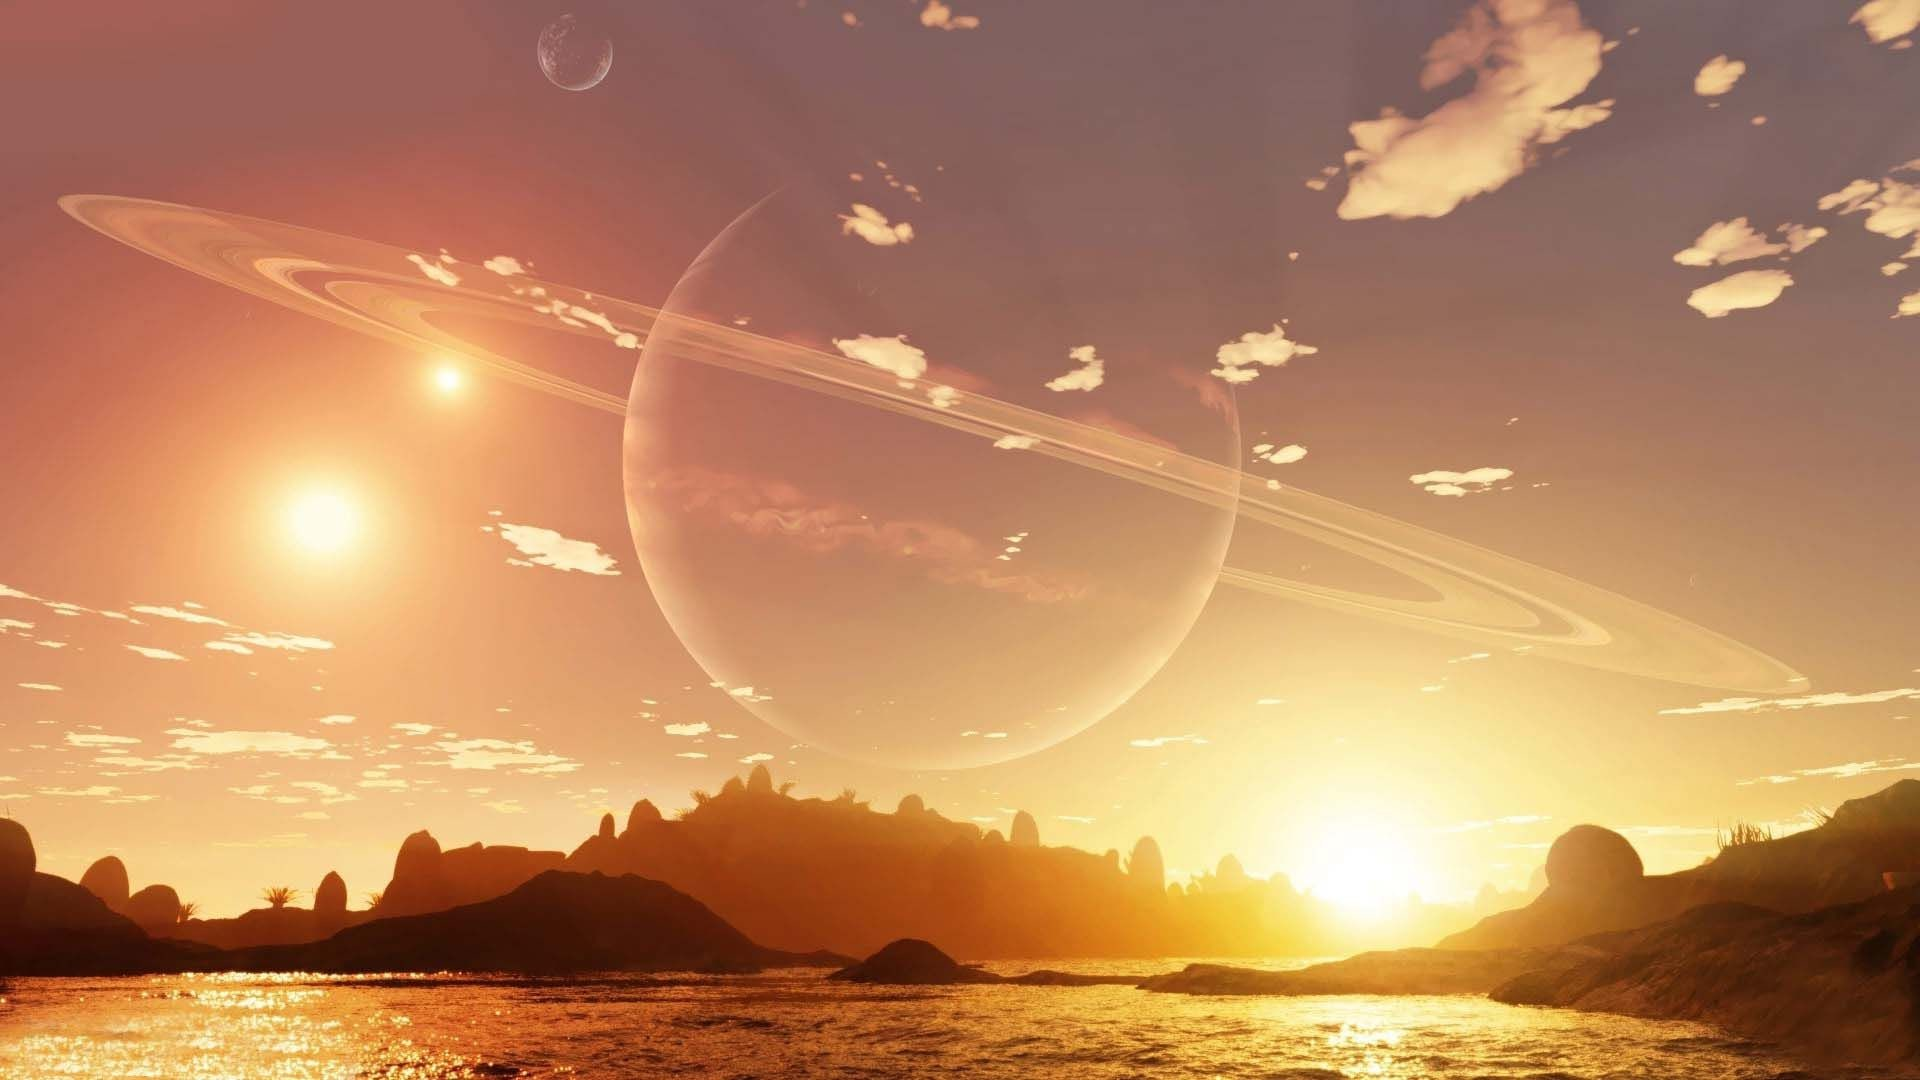 Res: 1920x1080, Planet In The Sky During The Day | HD Dreamy and Fantasy Wallpaper Free  Download ...